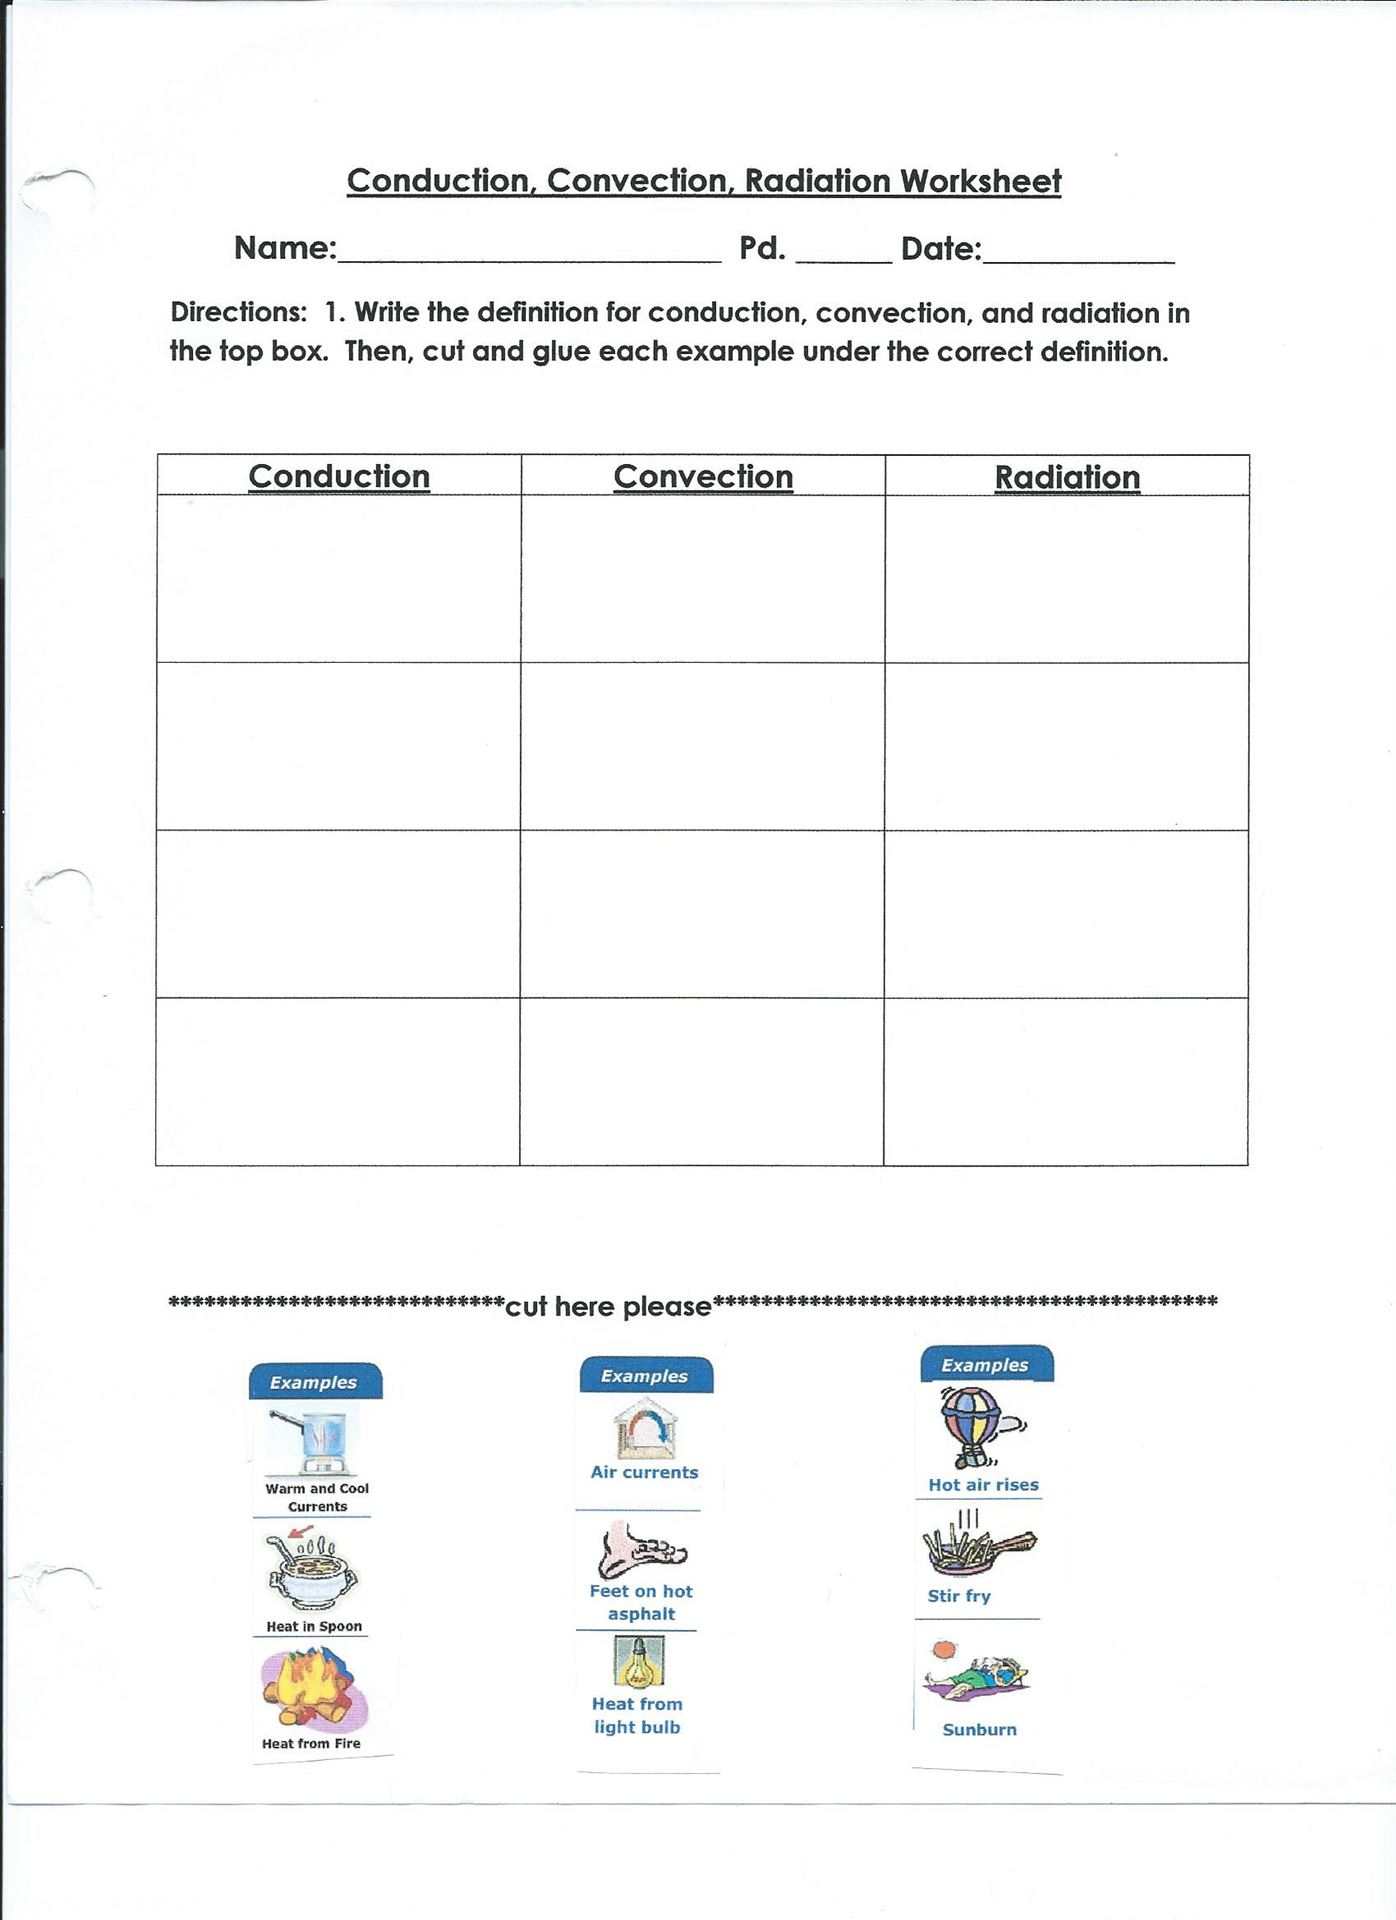 Radiation Convection Conduction Worksheet - Delibertad | science ...